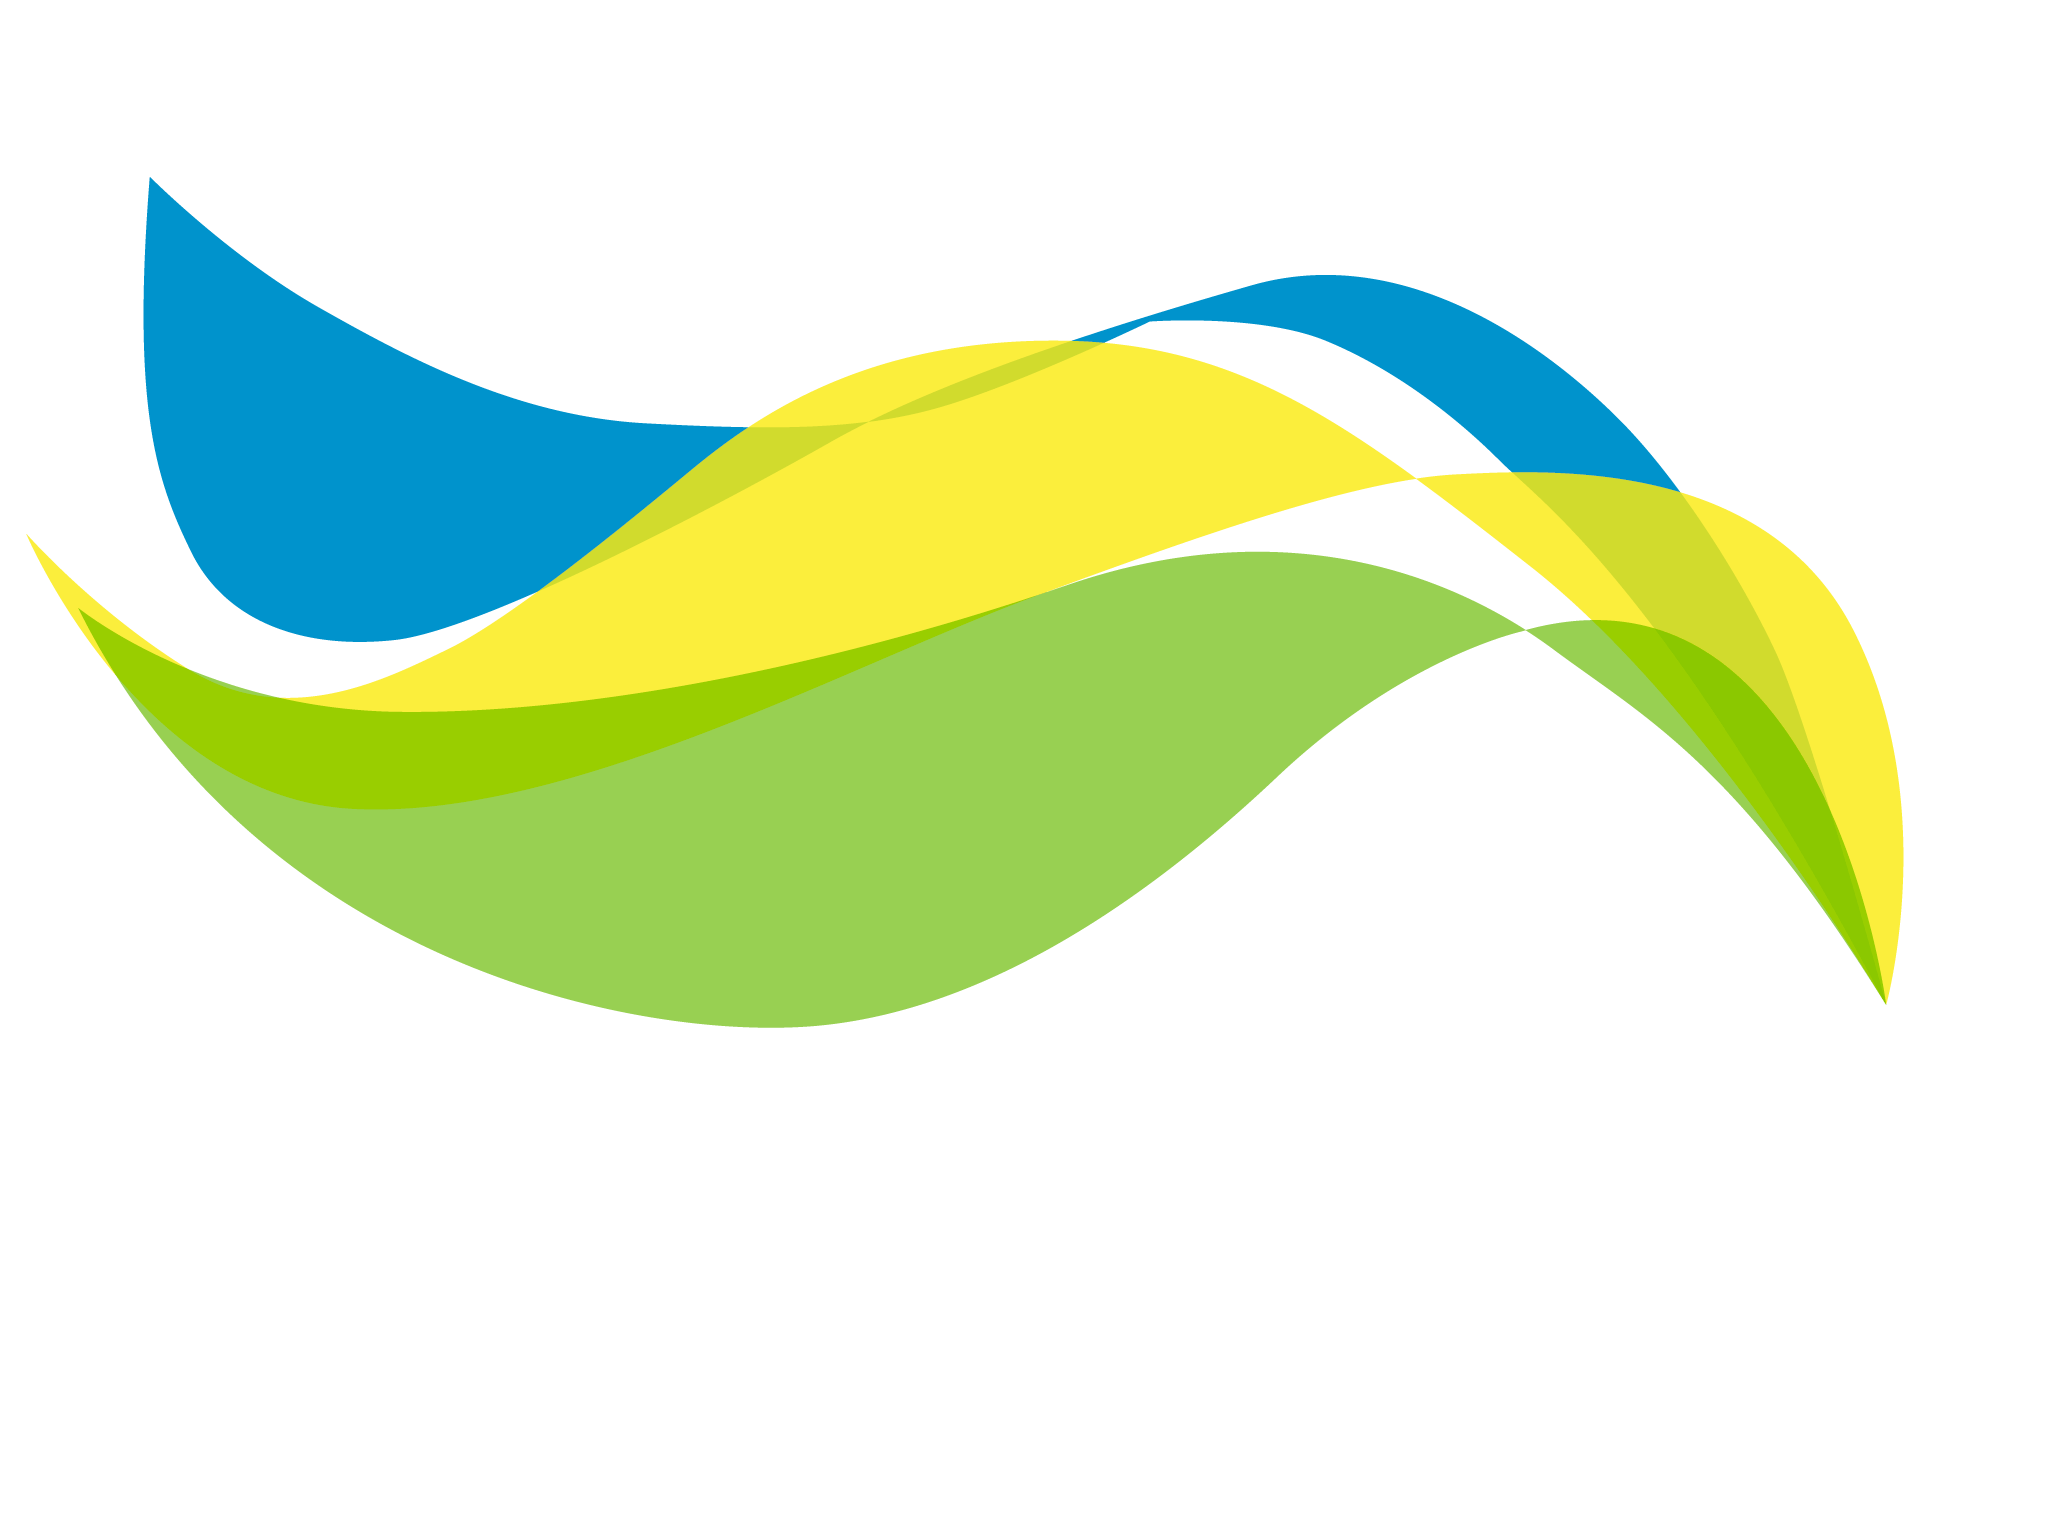 GRANBLACK Fertilizante Foliar Organomineral Premium Logotipo Amazon AgroSciences Atualizado